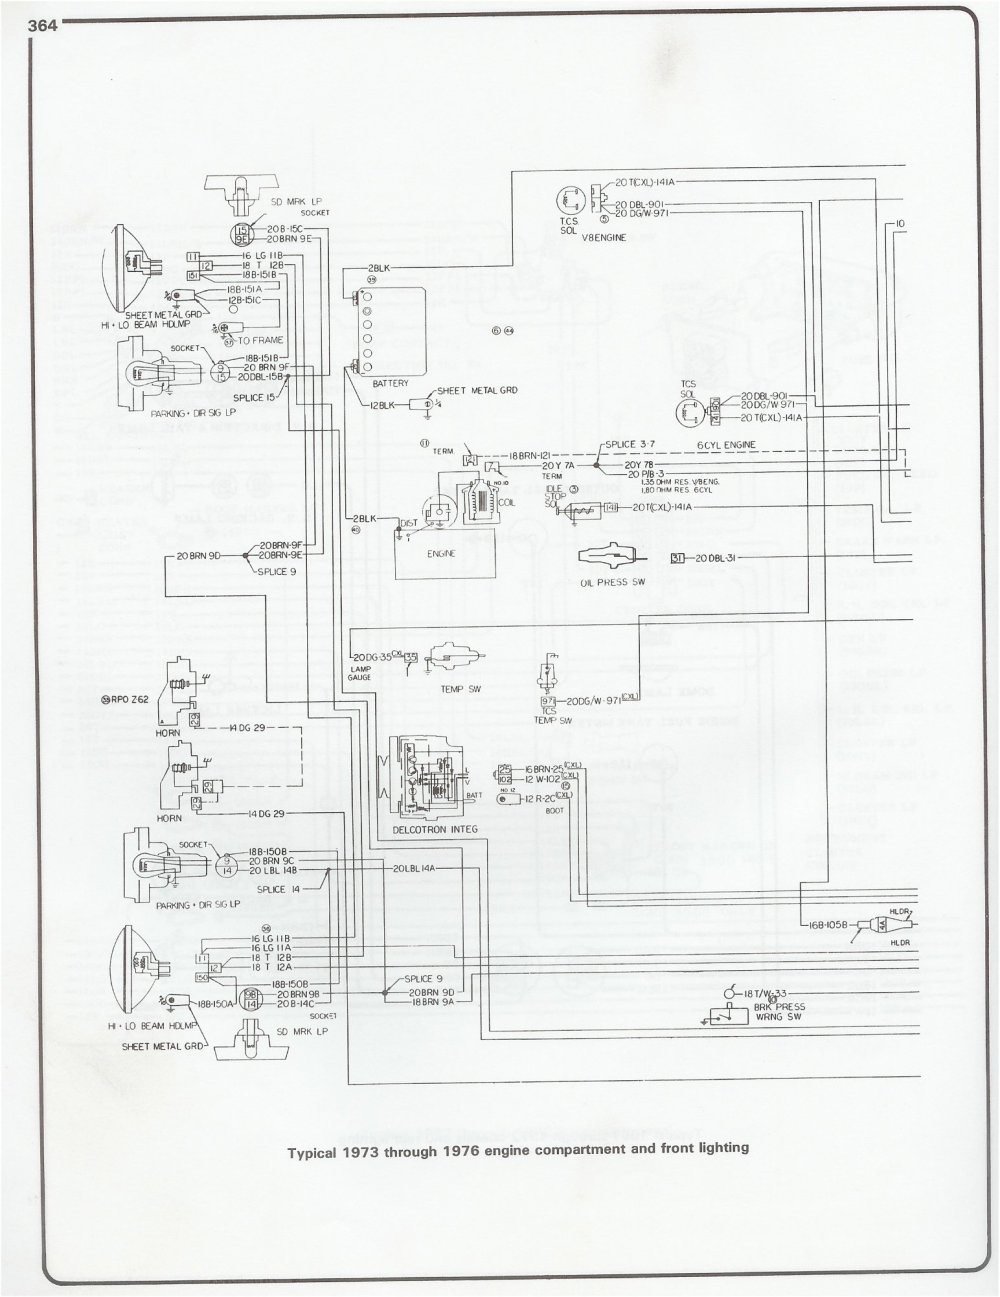 medium resolution of 73 corvette alternator wiring diagram best wiring library 1984 corvette wiring diagram complete 73 87 wiring